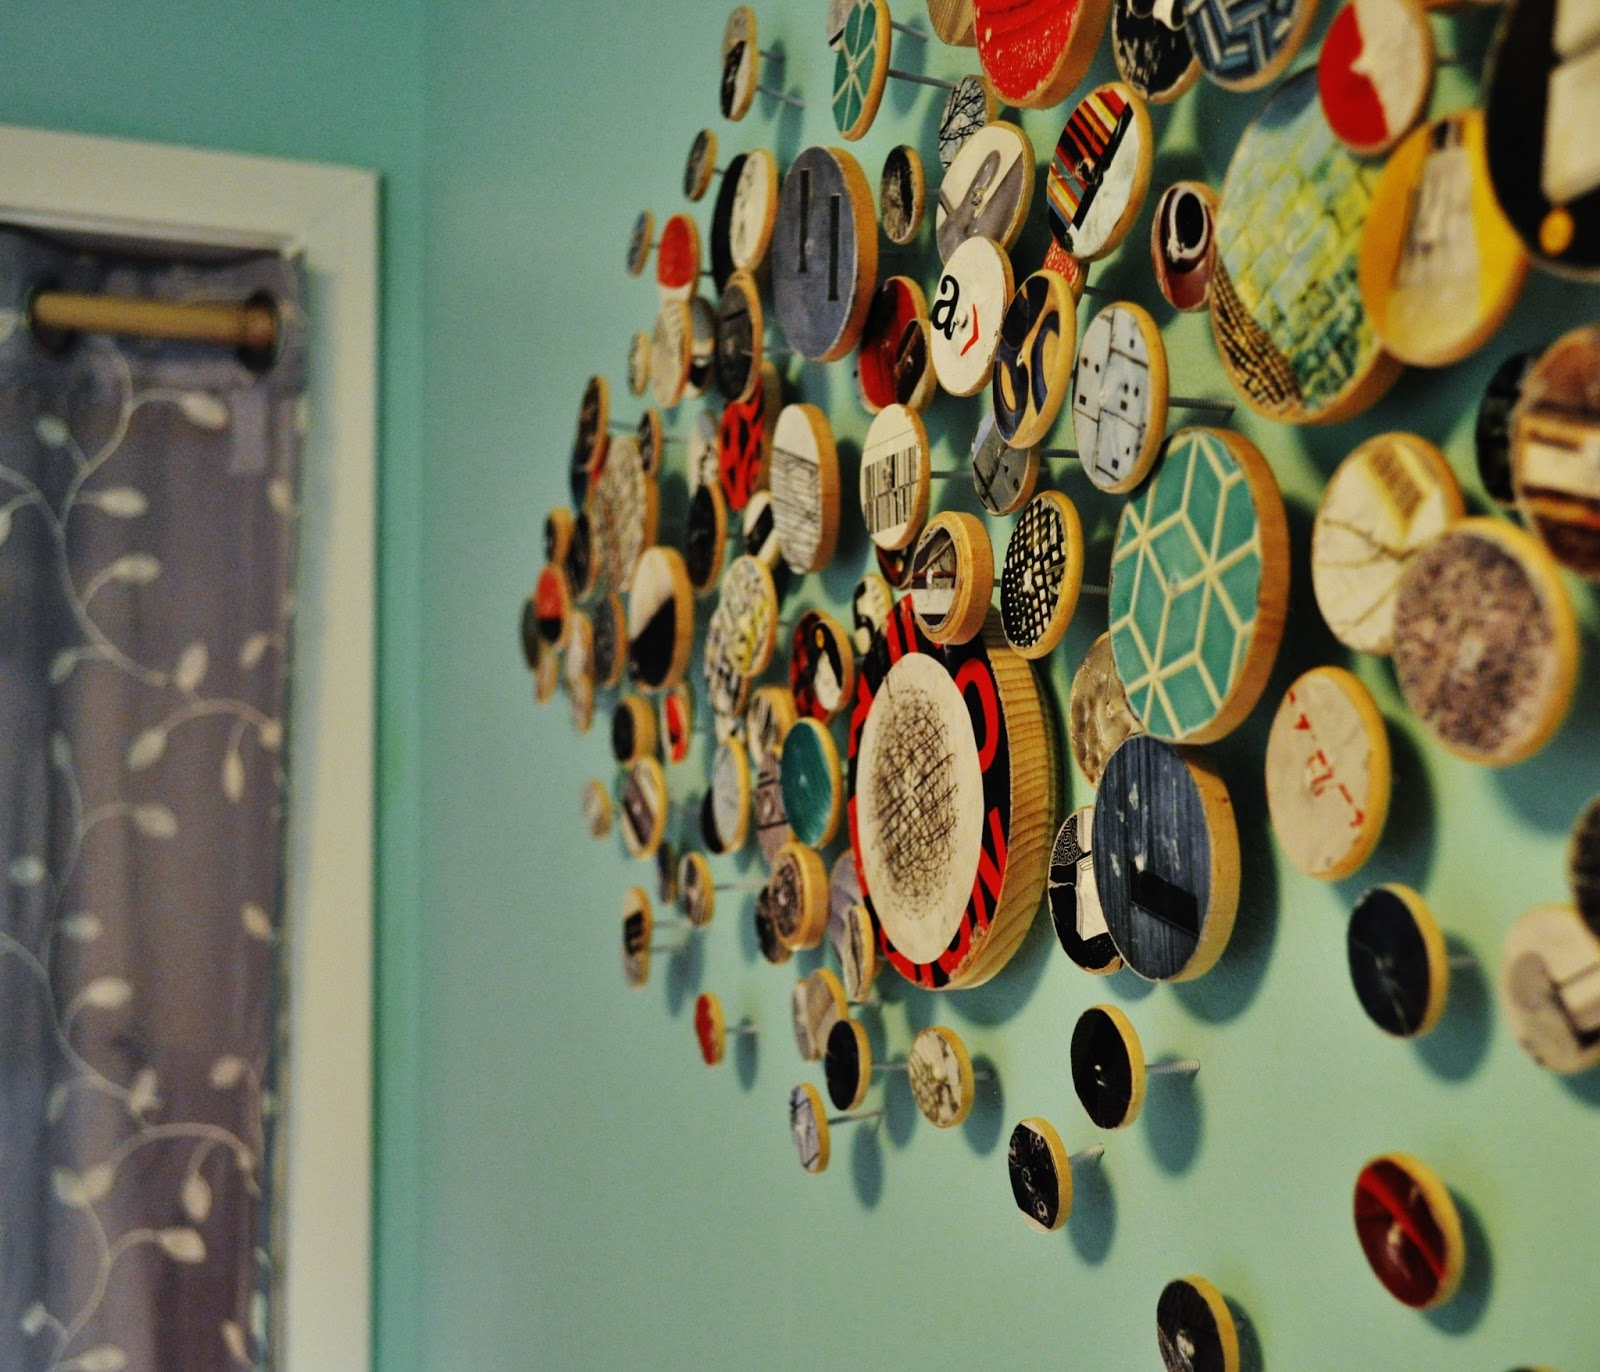 Crafty Wall Art with Magazines & Kelli Nina Perkins: Crafty Wall Art with Magazines